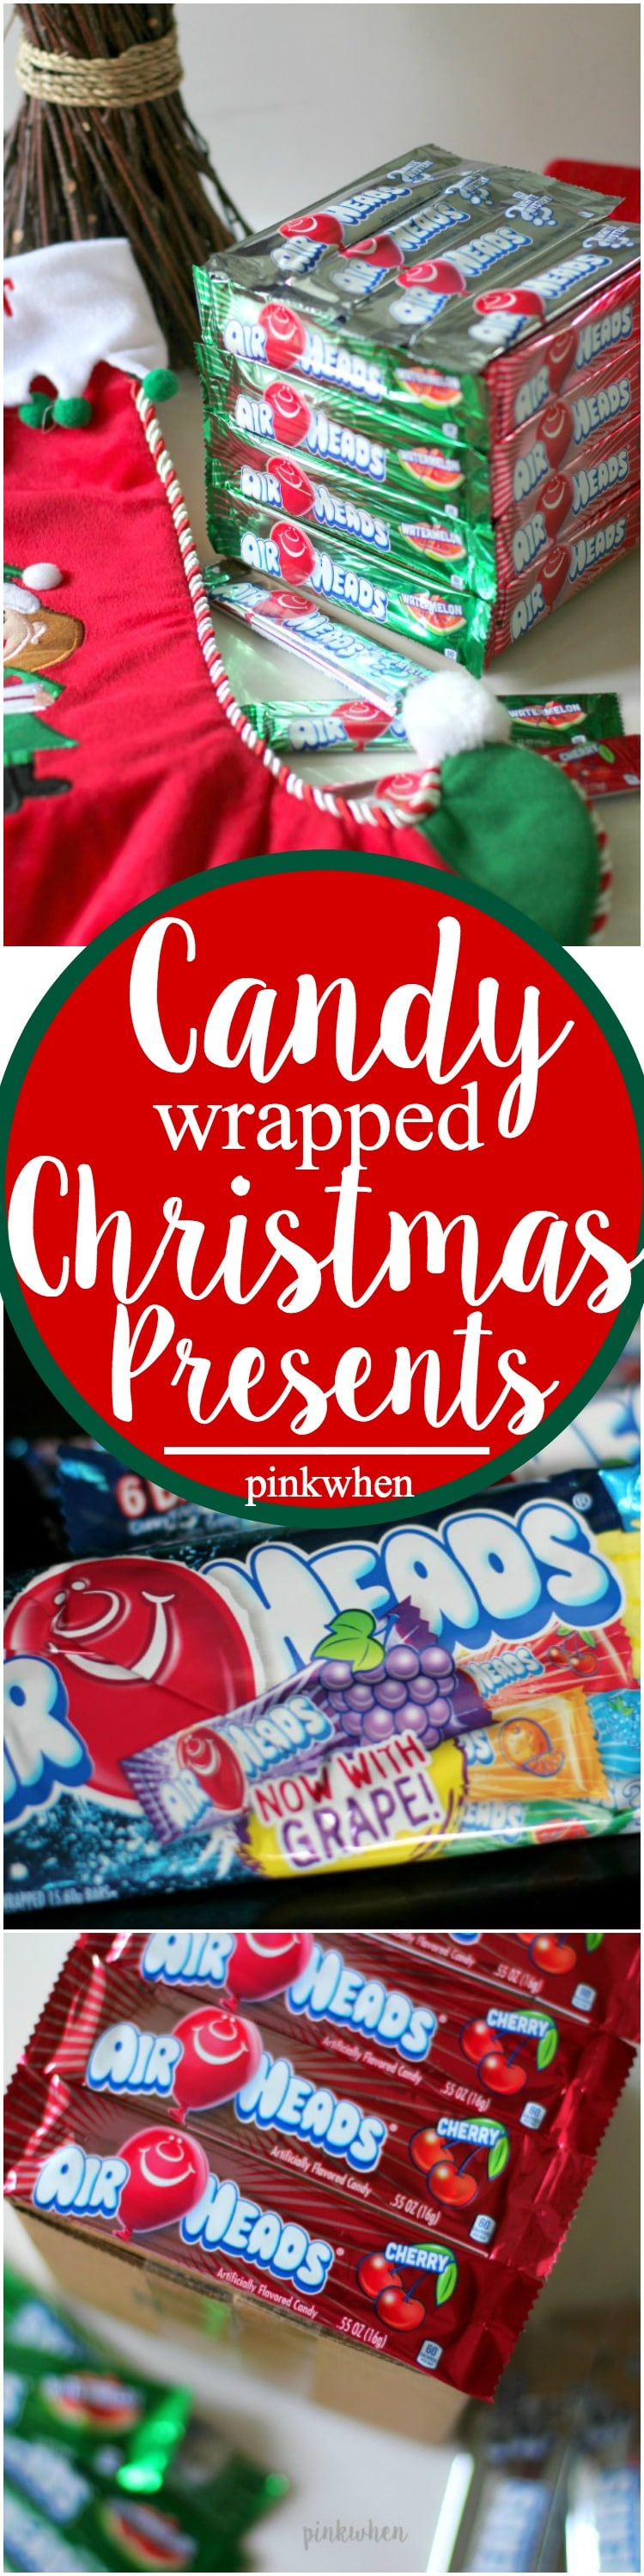 Try something new this year with these Candy Wrapped Christmas Presents!